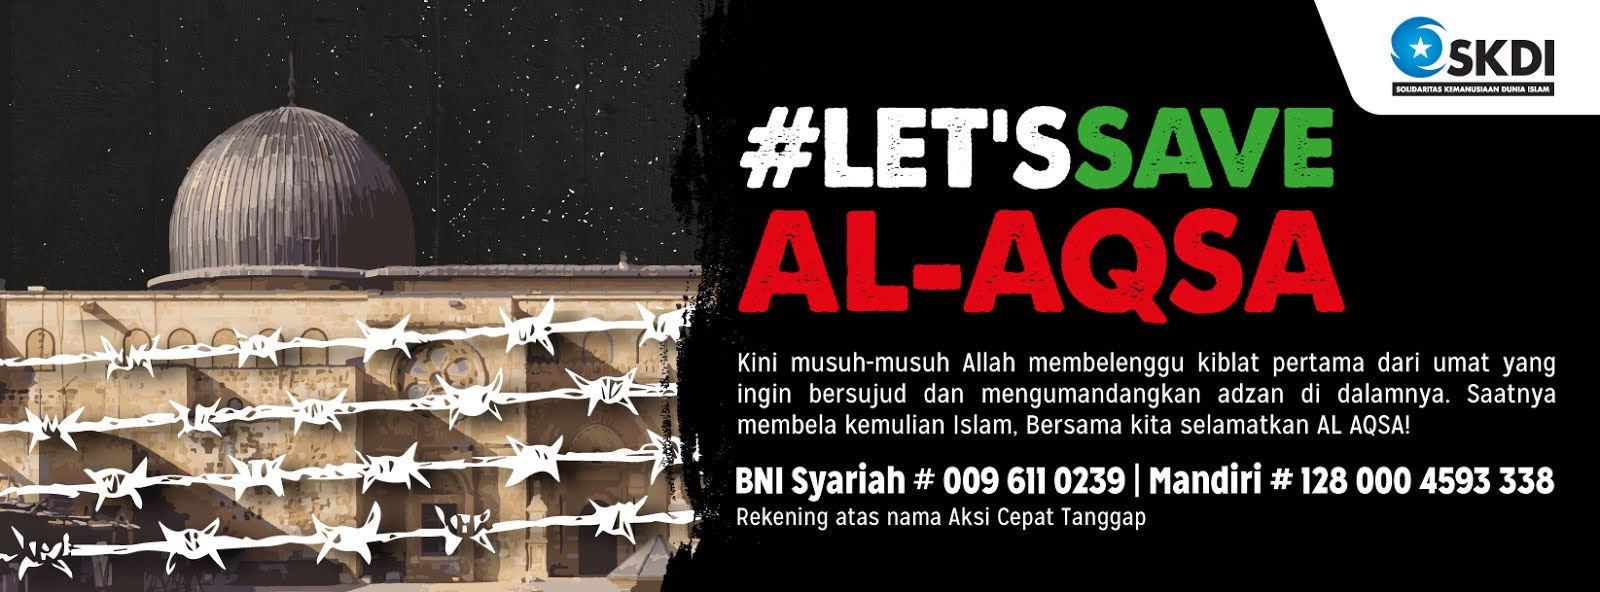 #LET'S SAVE AL-AQSA